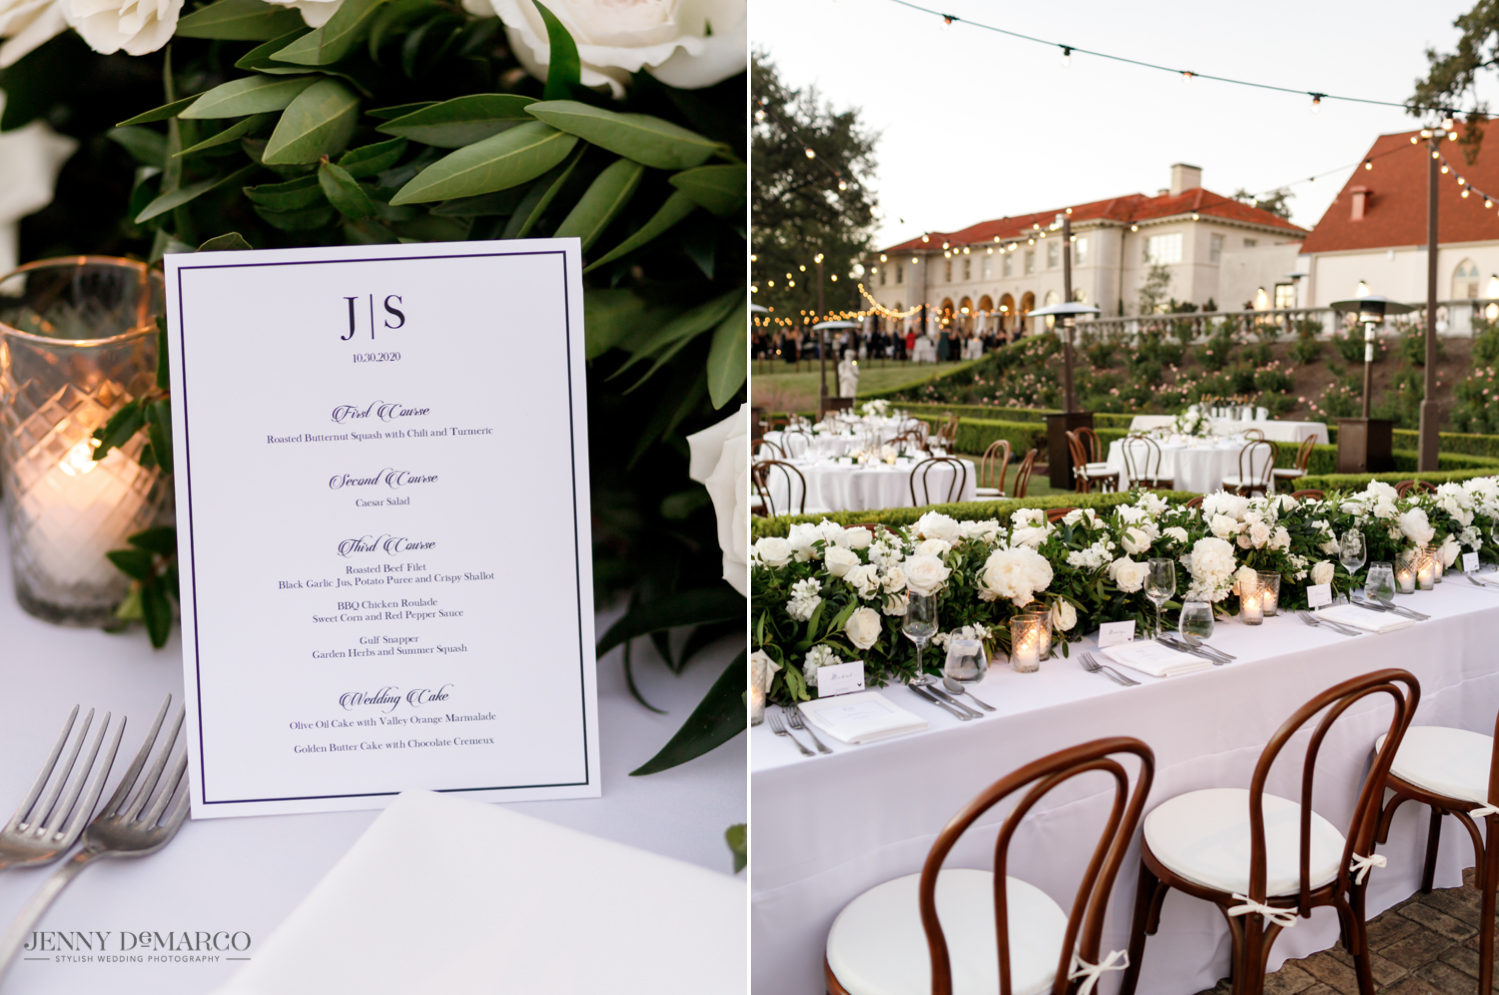 Wedding reception menu and elegant dinner set up in the sunken garden at the Commodore Perry Hotel in Austin, Texas